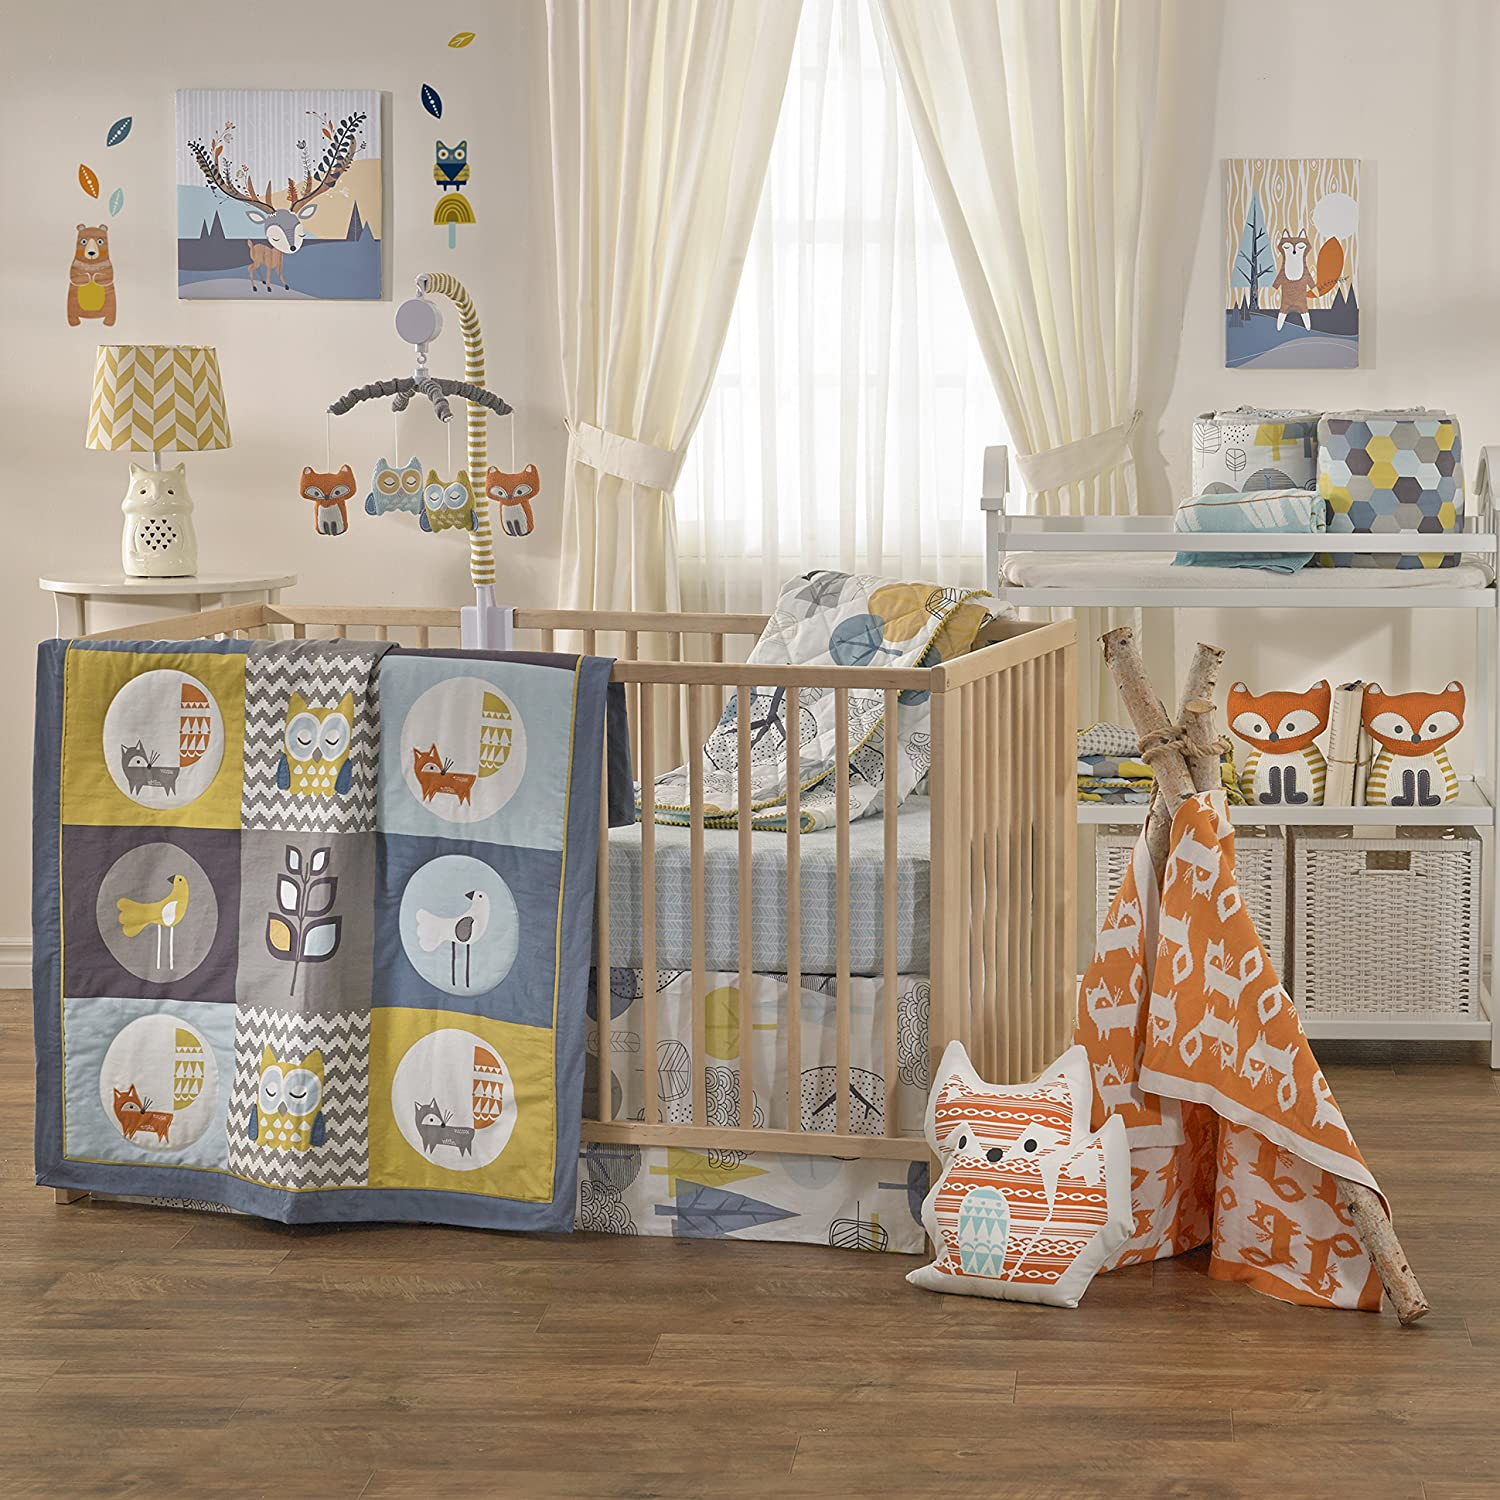 Crib Bedding Set Baby Living Woods Wildlife Rustic Boy